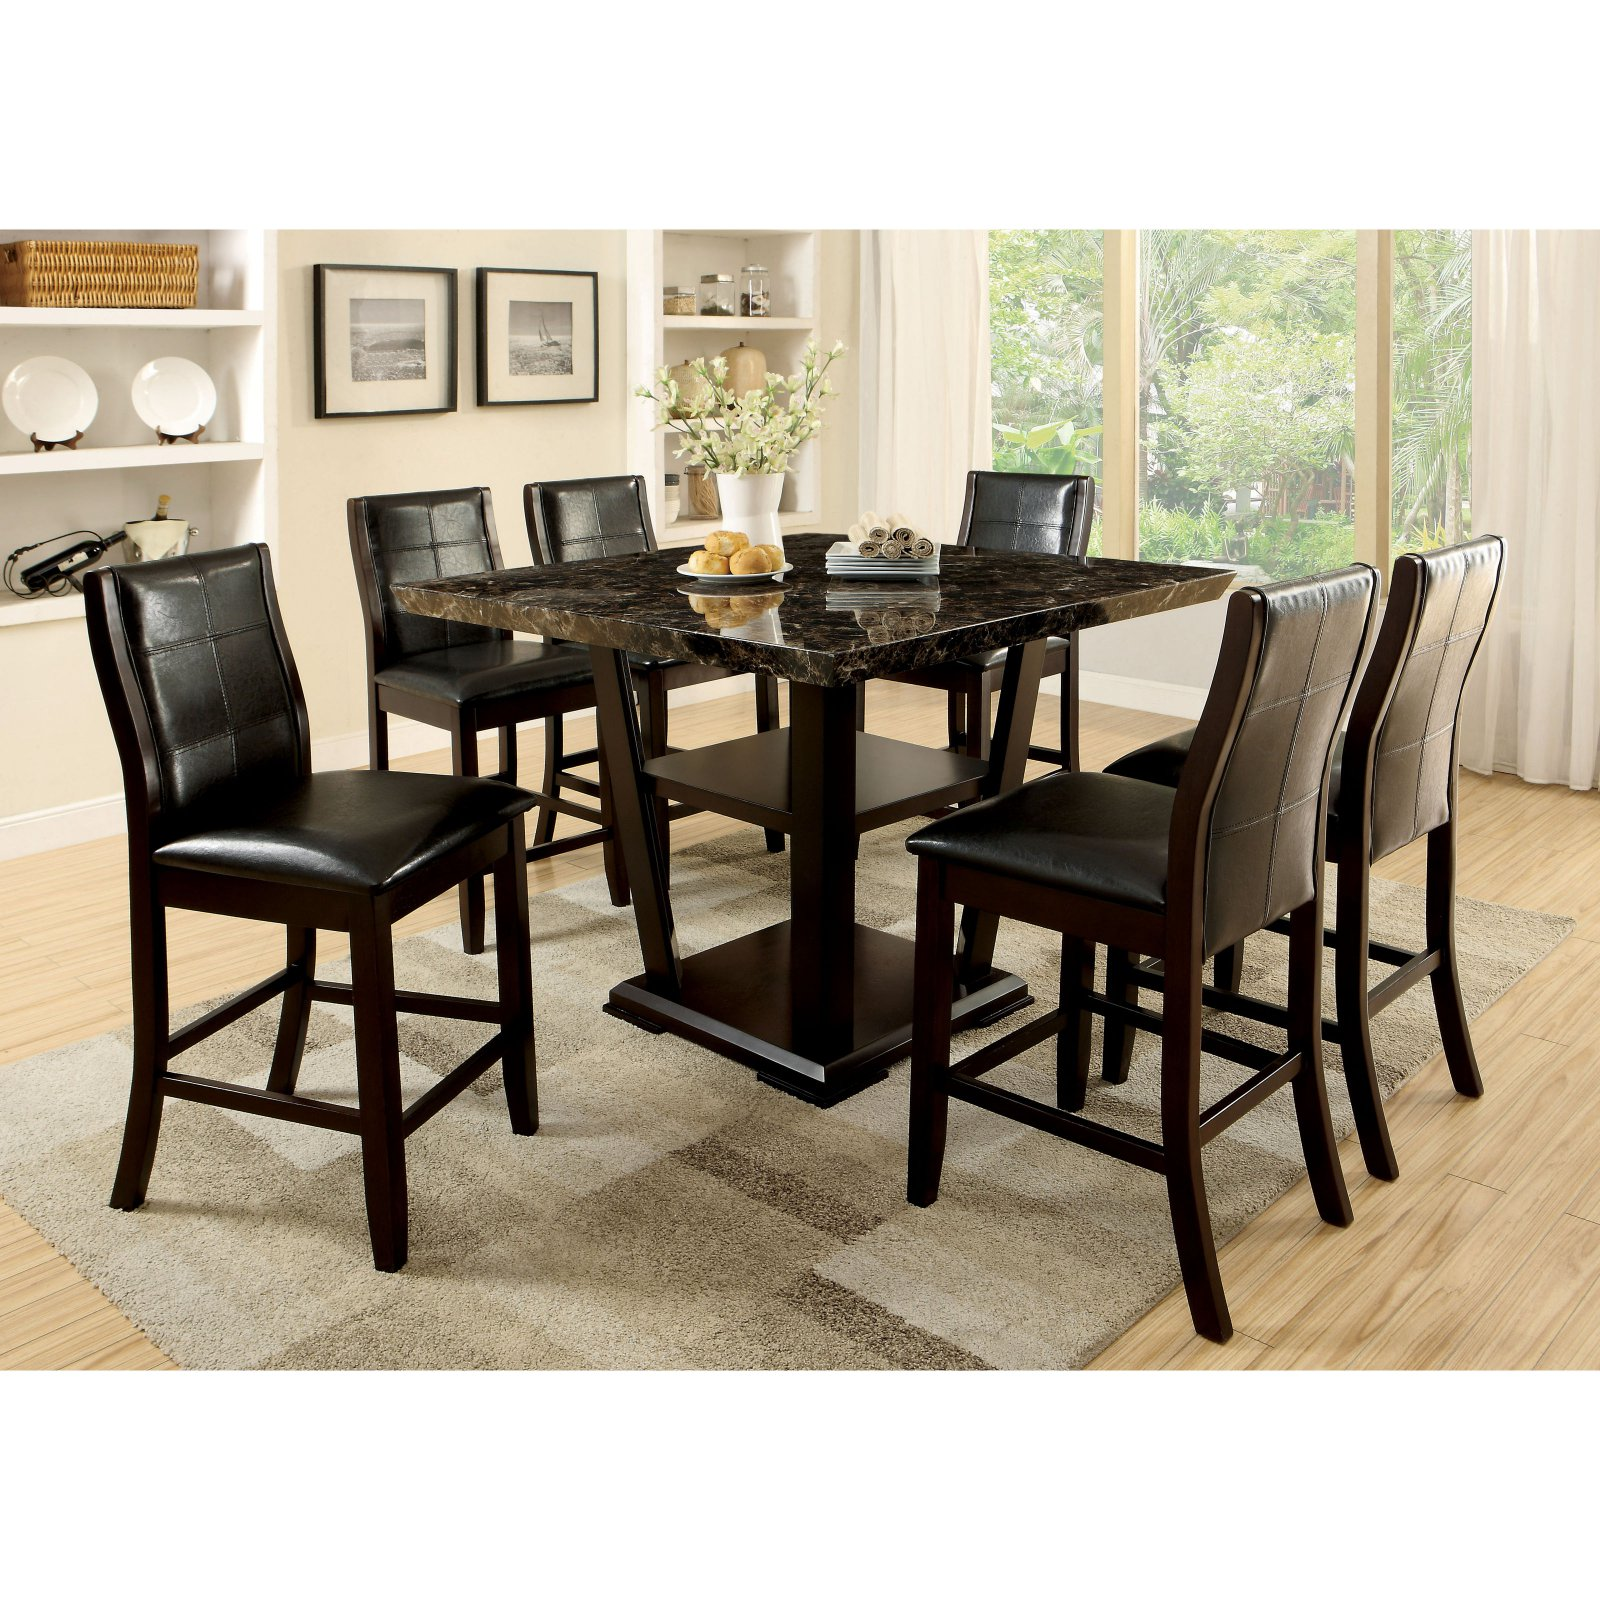 Furniture of America Newrock 7 Piece Counter Height Faux Marble Dining Table Set - Walmart.com  sc 1 st  Walmart & Furniture of America Newrock 7 Piece Counter Height Faux Marble ...